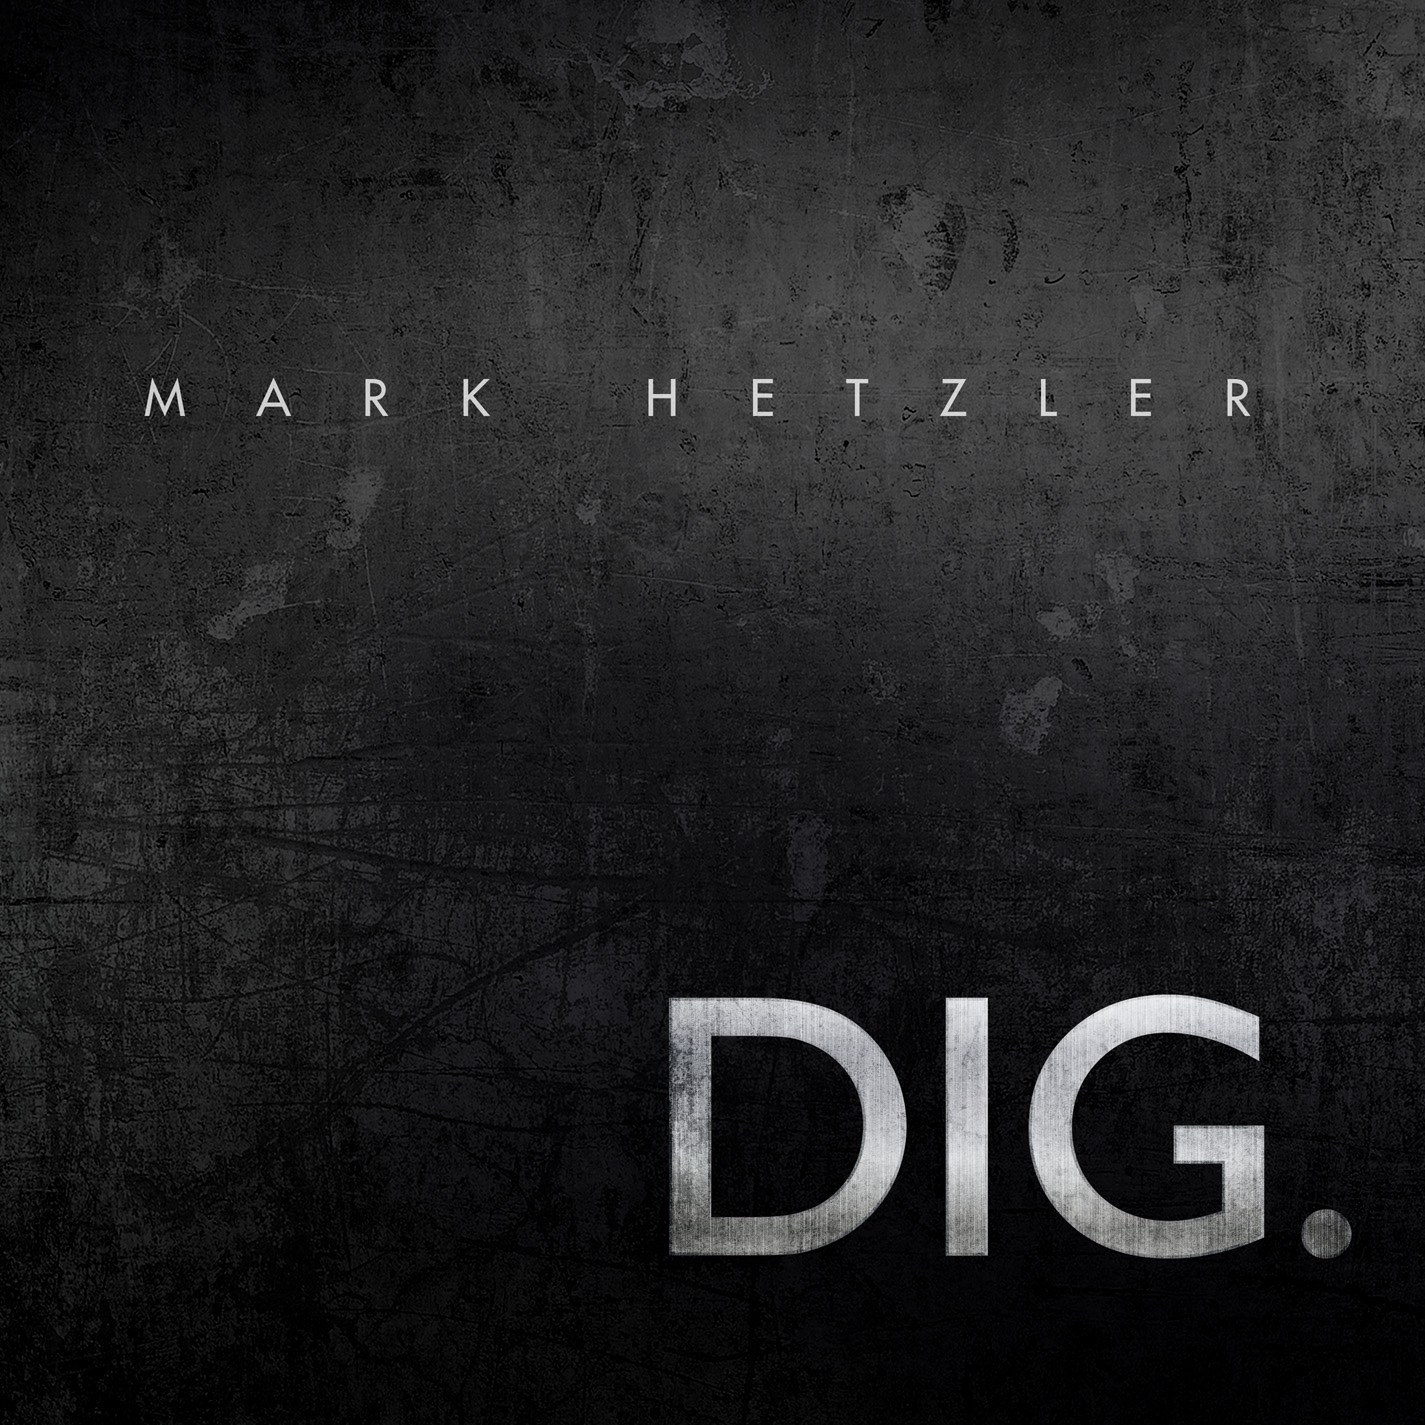 Dig. - 2016   Summit Records (DCD 684)